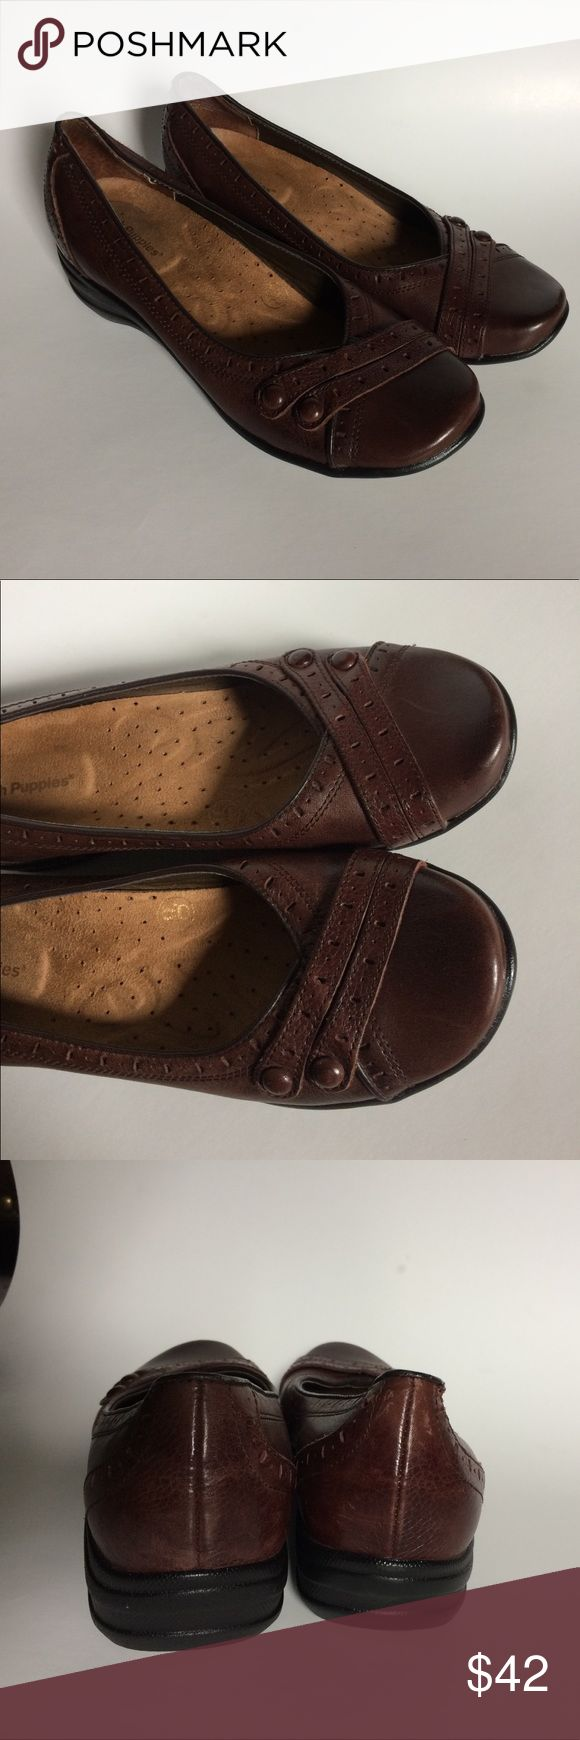 SALE! Brown burlesque Hush Puppies Nearly new dark brown Hush puppies burlesque. Hush Puppies Shoes Flats & Loafers